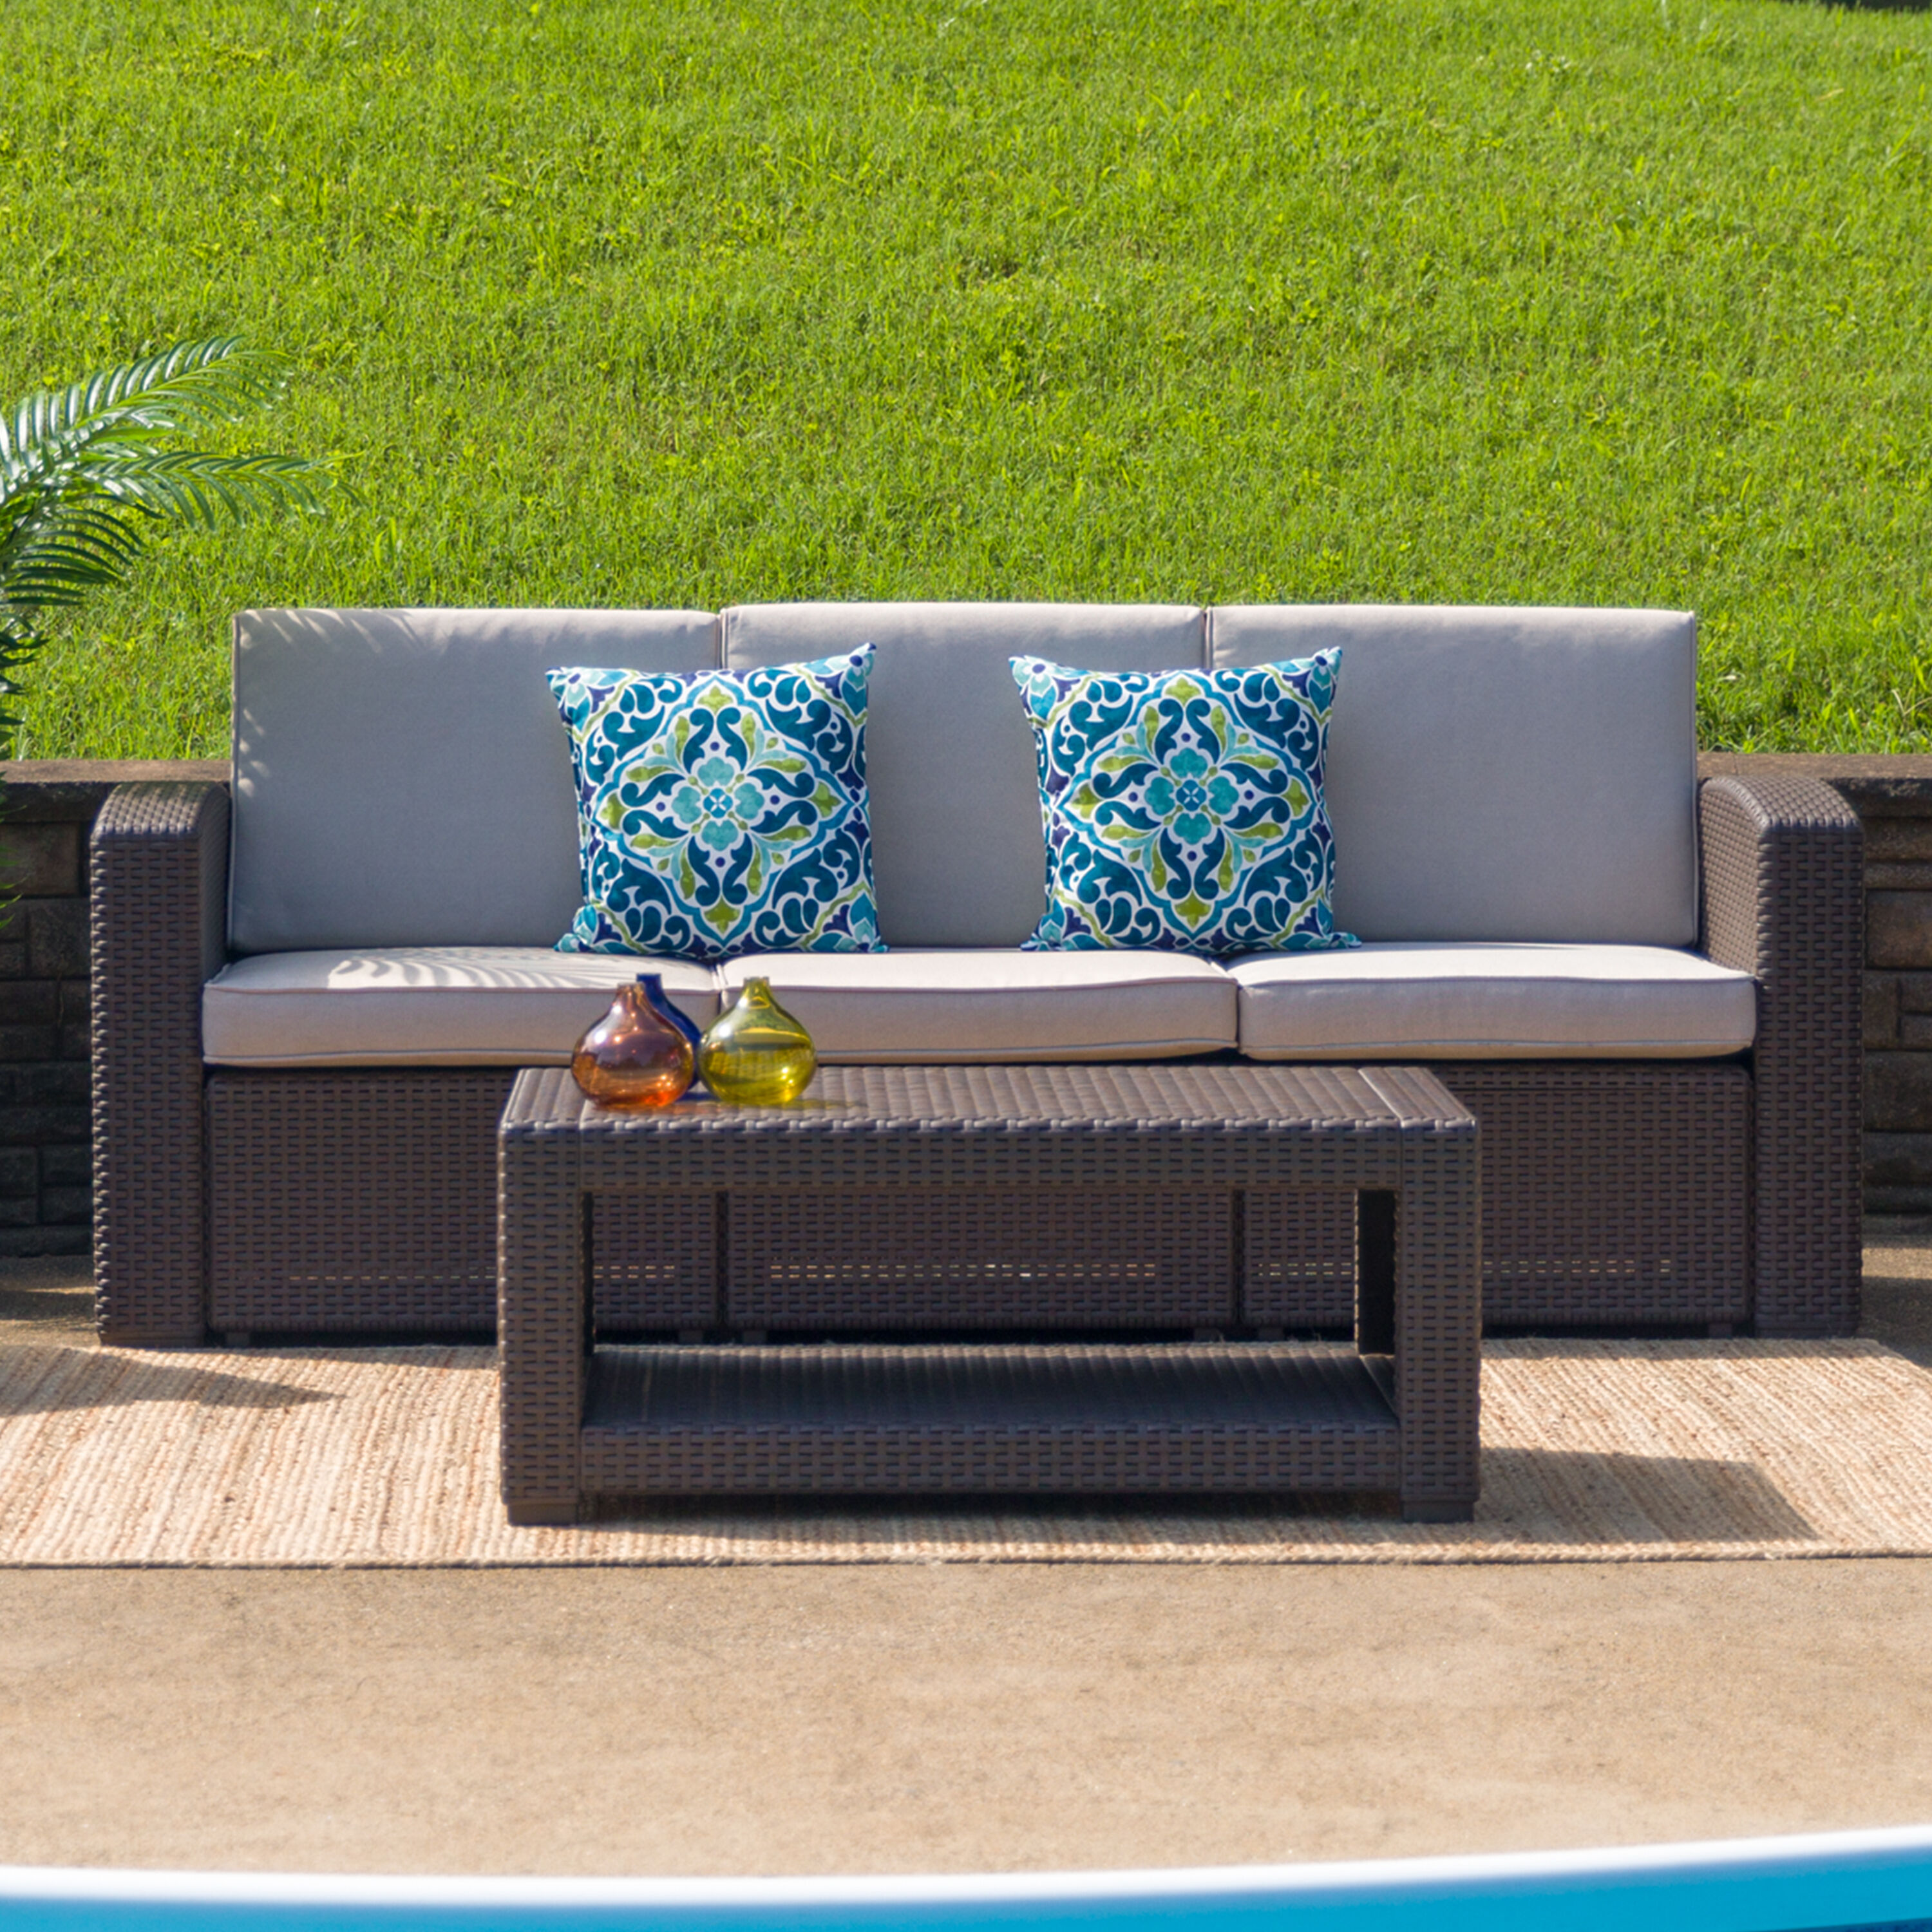 Our Chocolate Brown Faux Rattan Coffee Table Is On Sale Now.